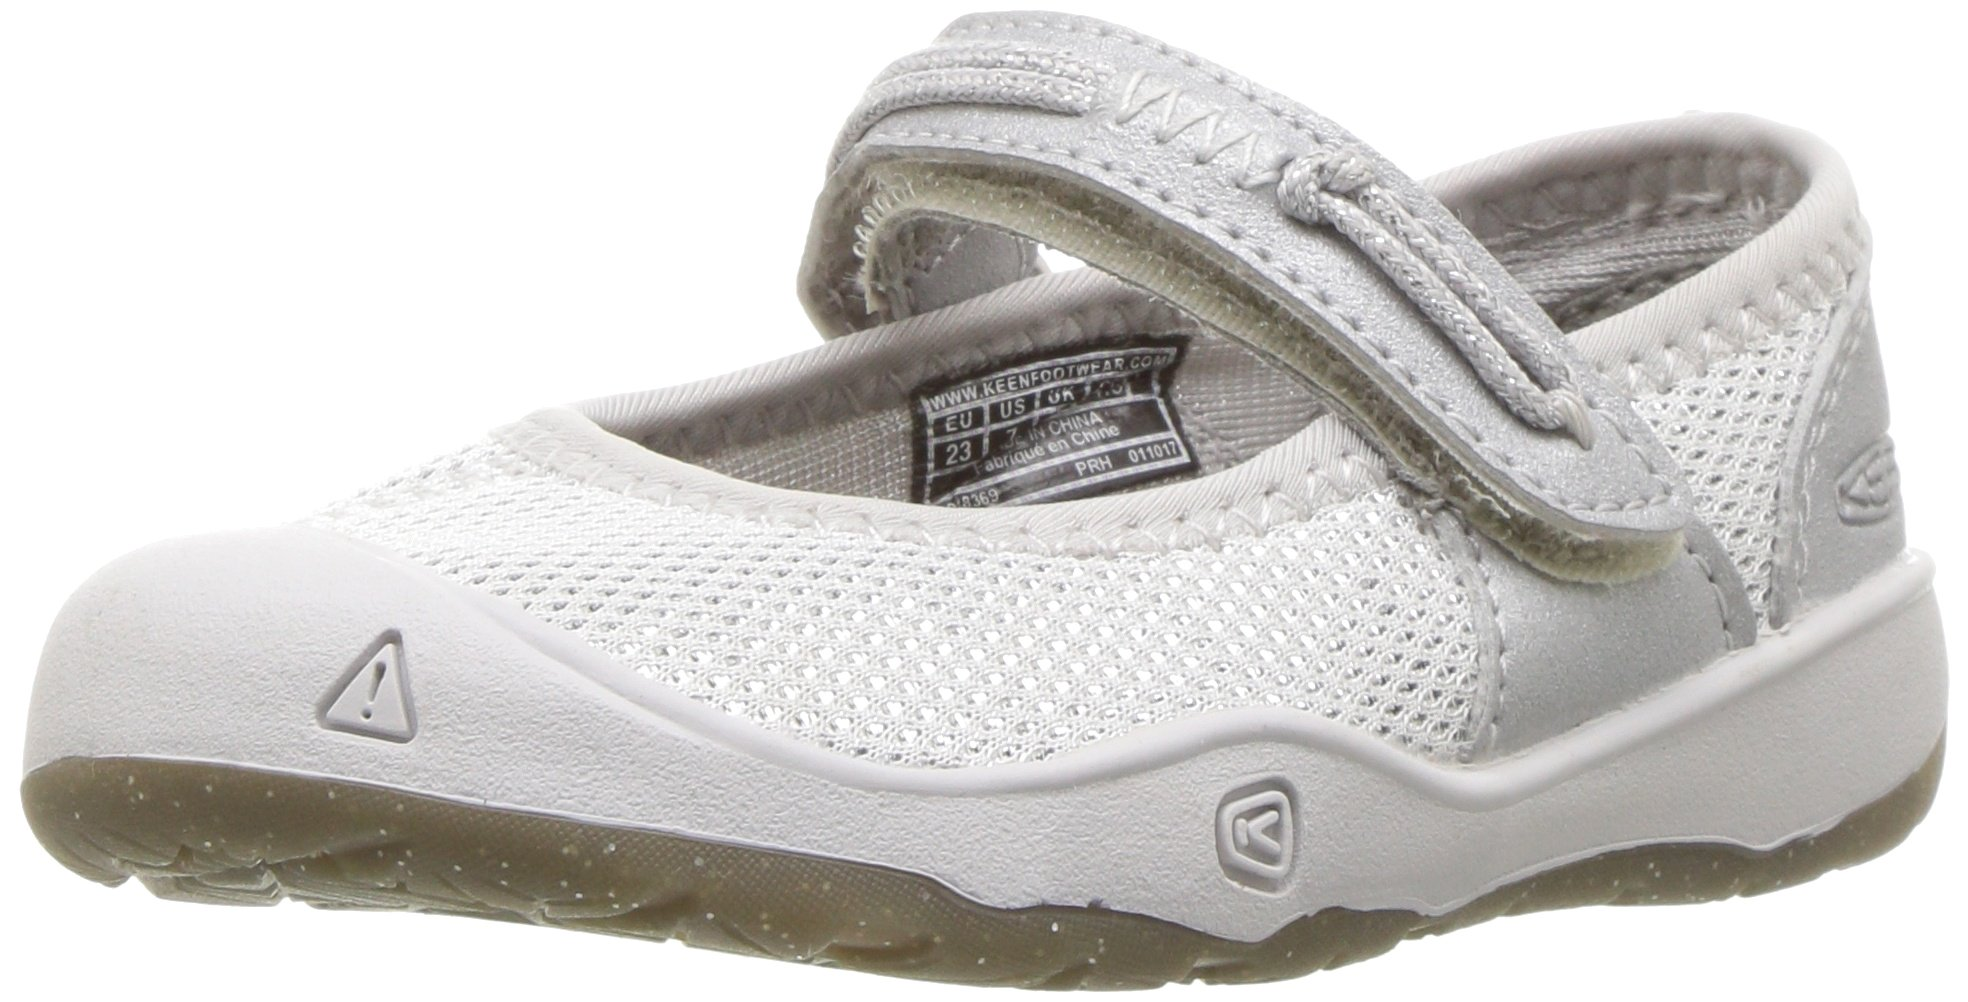 KEEN Baby Moxie Mary Jane, Silver, 11 Toddler US Toddler